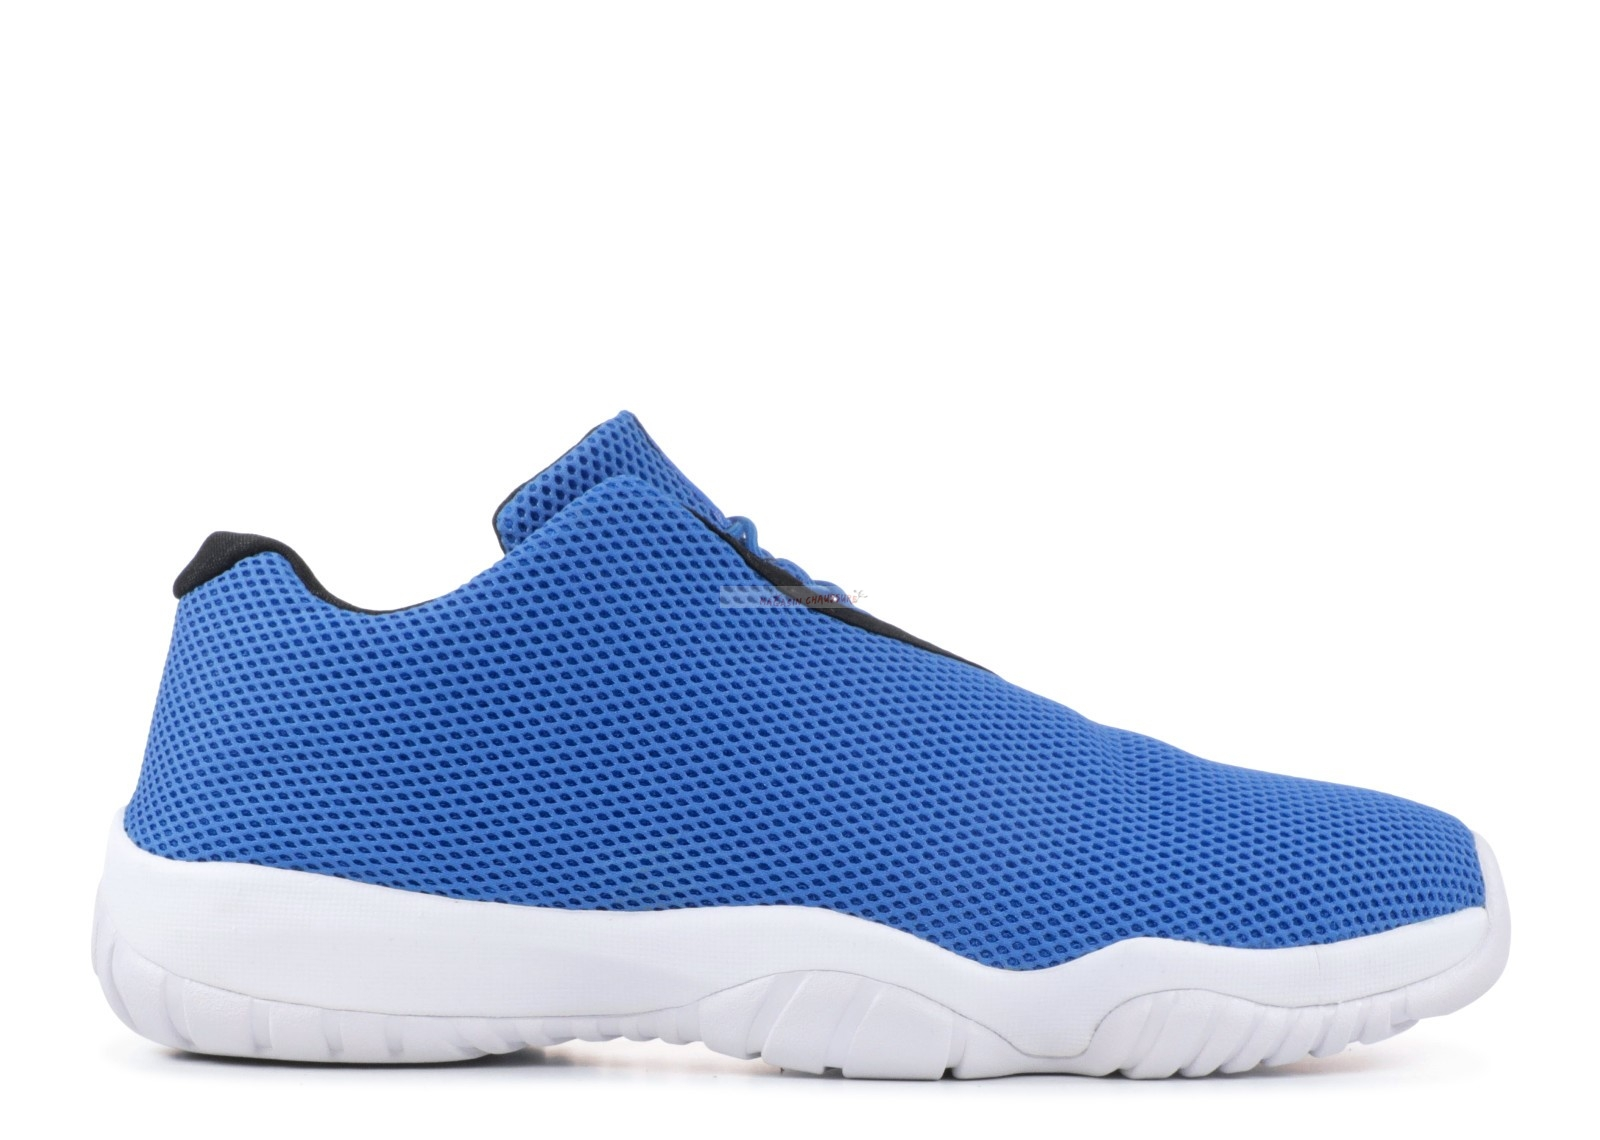 Air Jordan Future Low Bleu Blanc 3 (718948-400) Chaussure de Basket